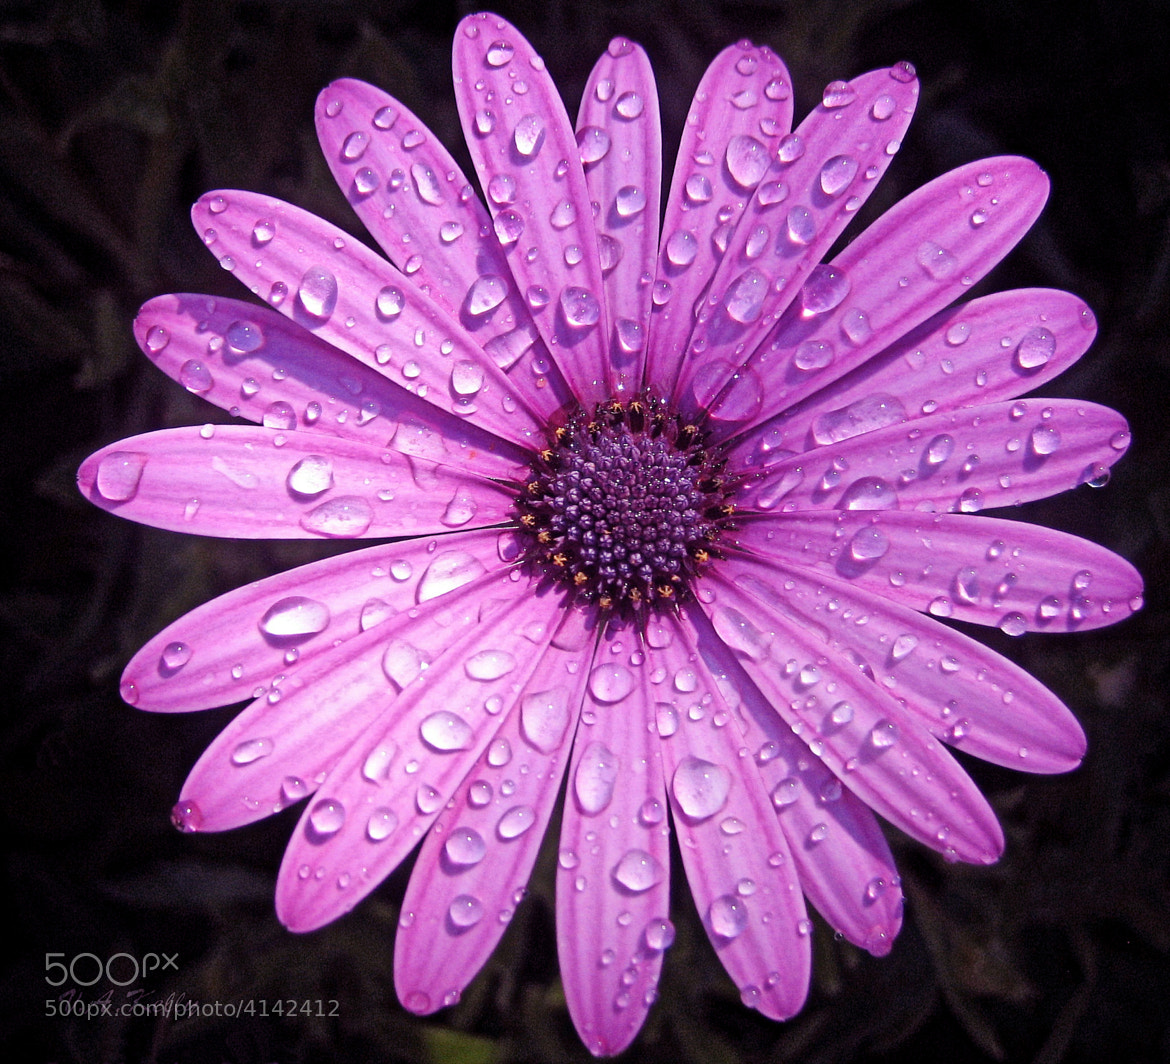 Photograph Dewdrops by Valerie Anne Kelly on 500px